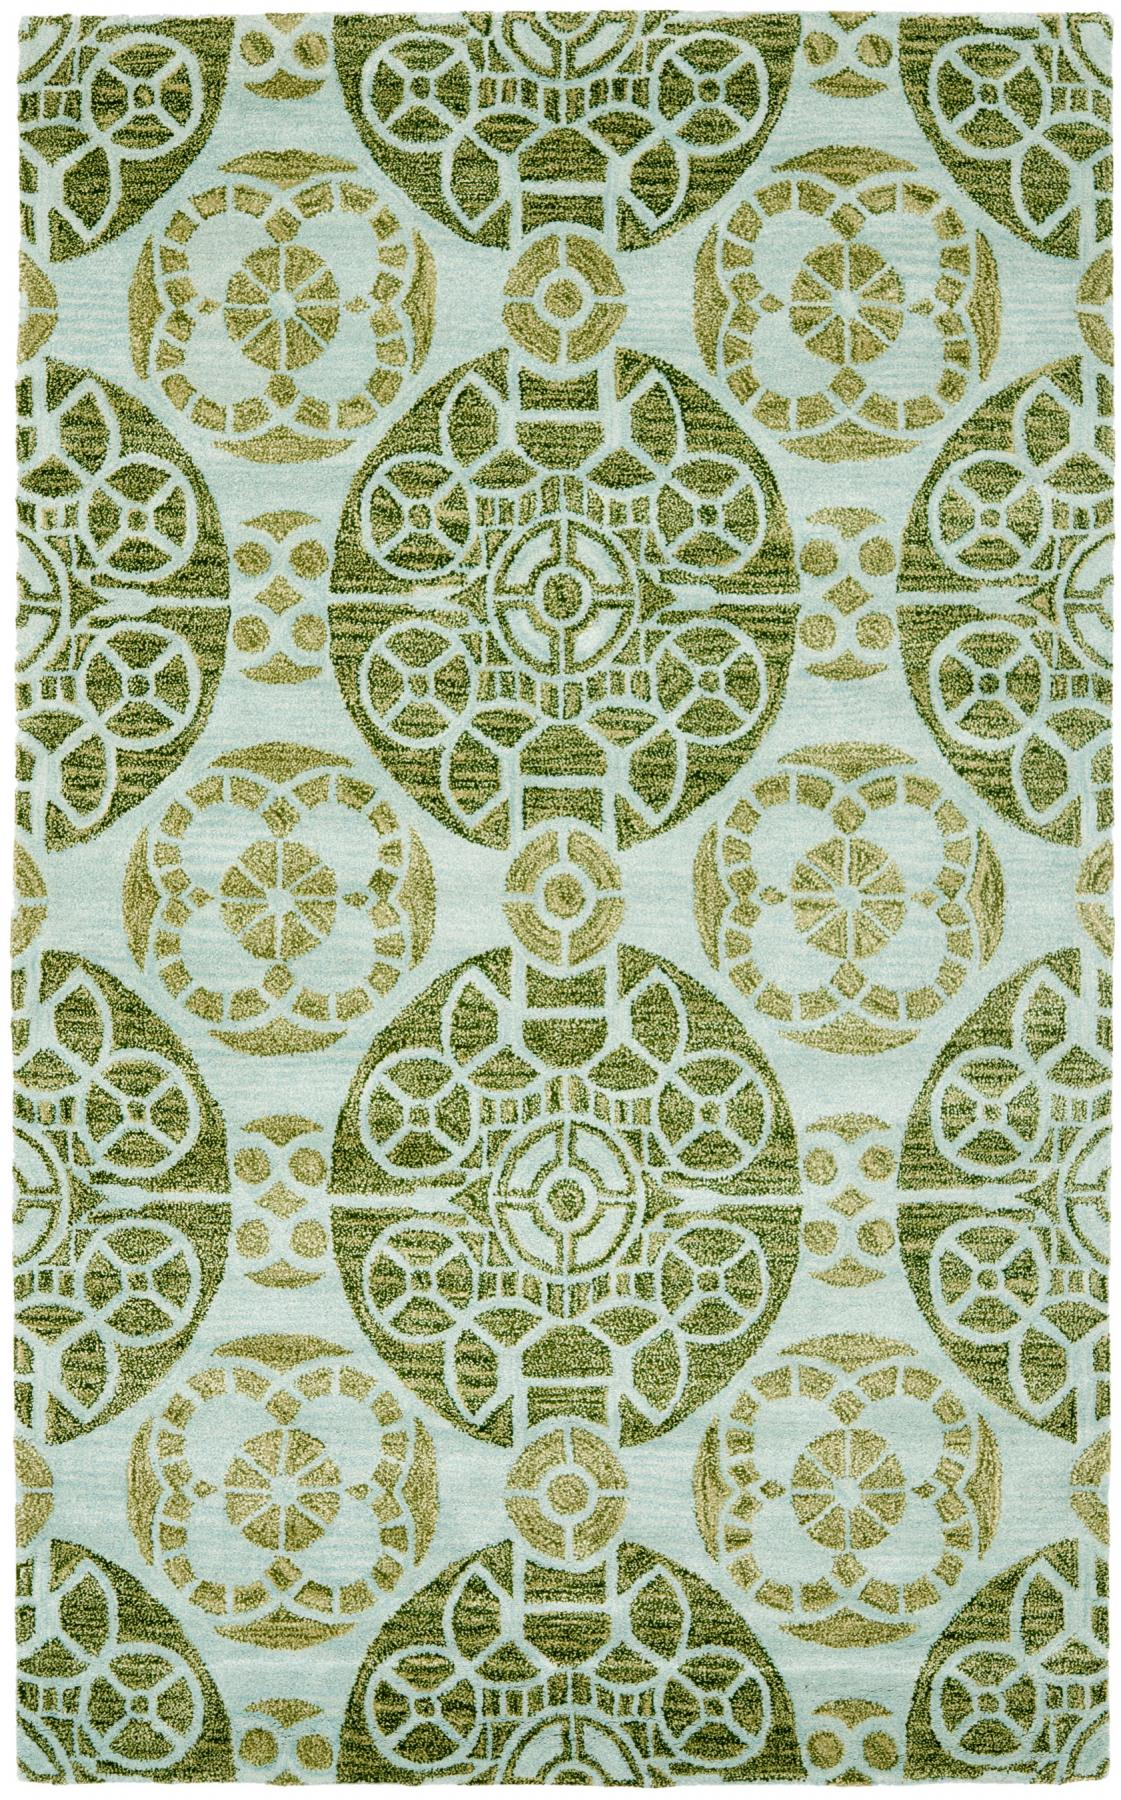 Square Rugs 7x7 | Rugs at Lowes | Area Rugs 8x10 Clearance